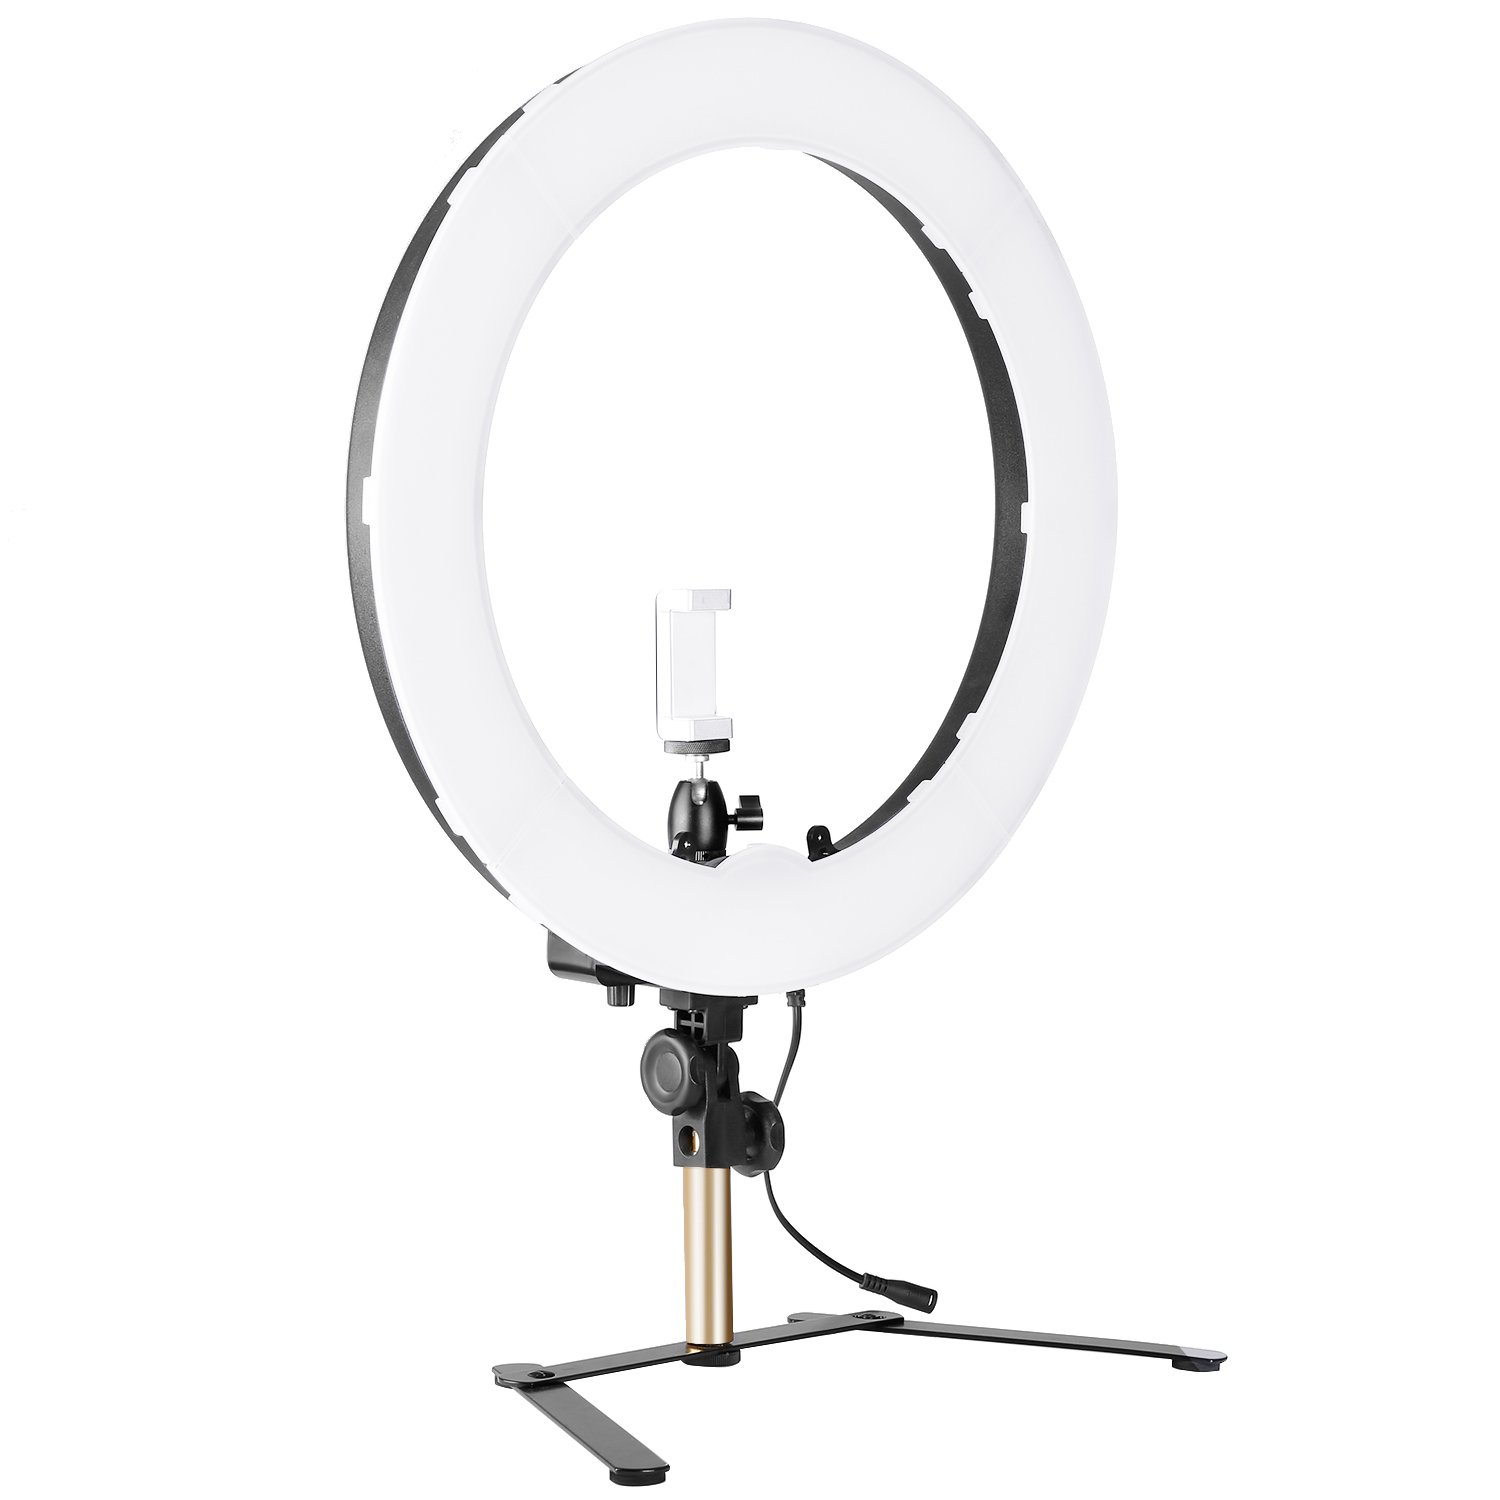 Neewer 14-inch Outer Dimmable Bi-color SMD LED Ring Light Lighting Kit for Smartphone Video Shooting with (1)Light Stand, (1)Ball Head, (1)Phone Holder, (2)Li-ion Battery, (1)Charger, (1)Bluetooth Receiver 10092398